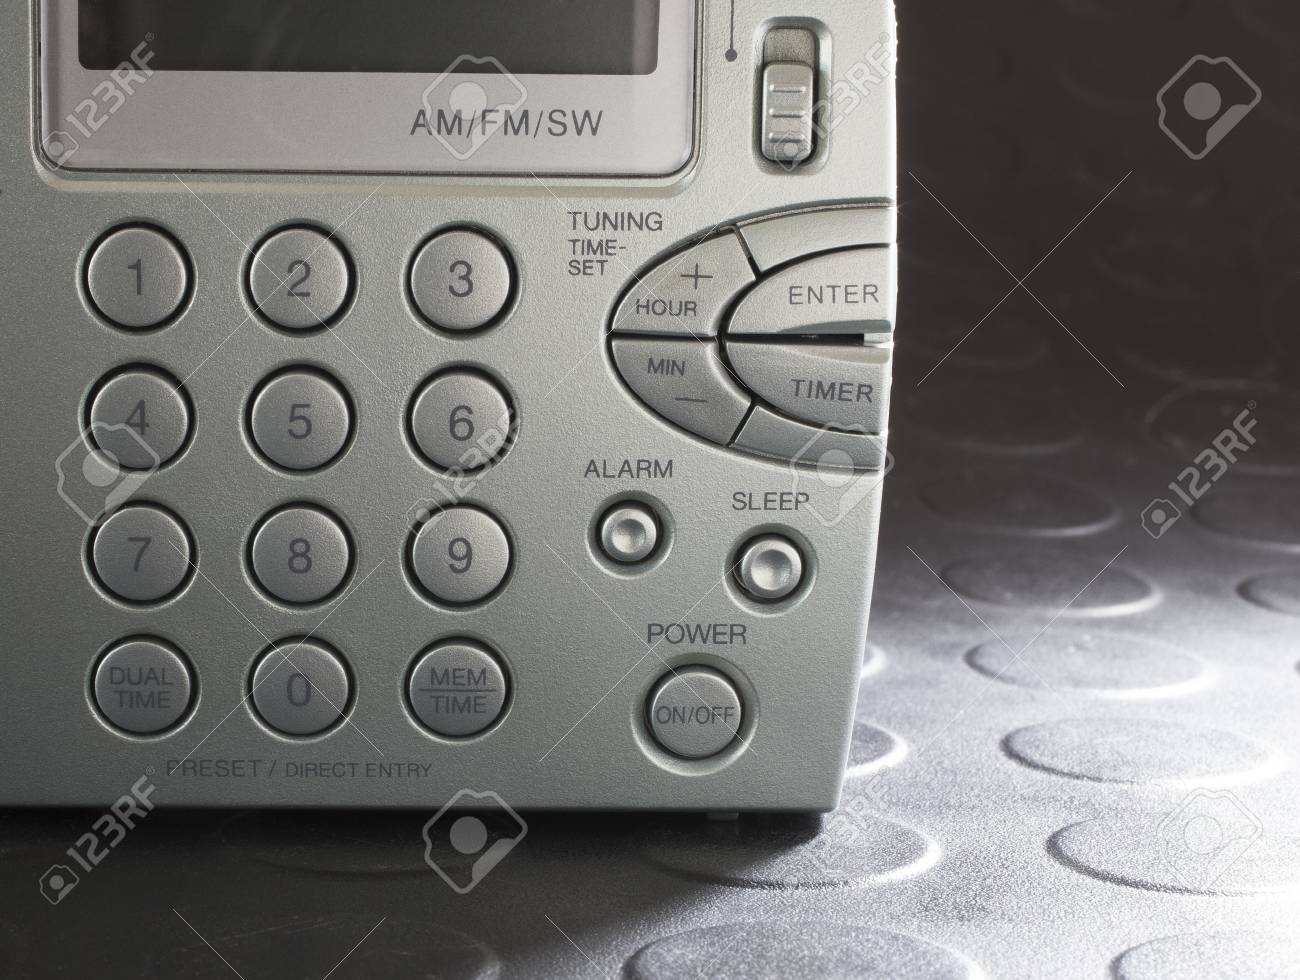 Keypad on a battery powered radio that can receive broadcast